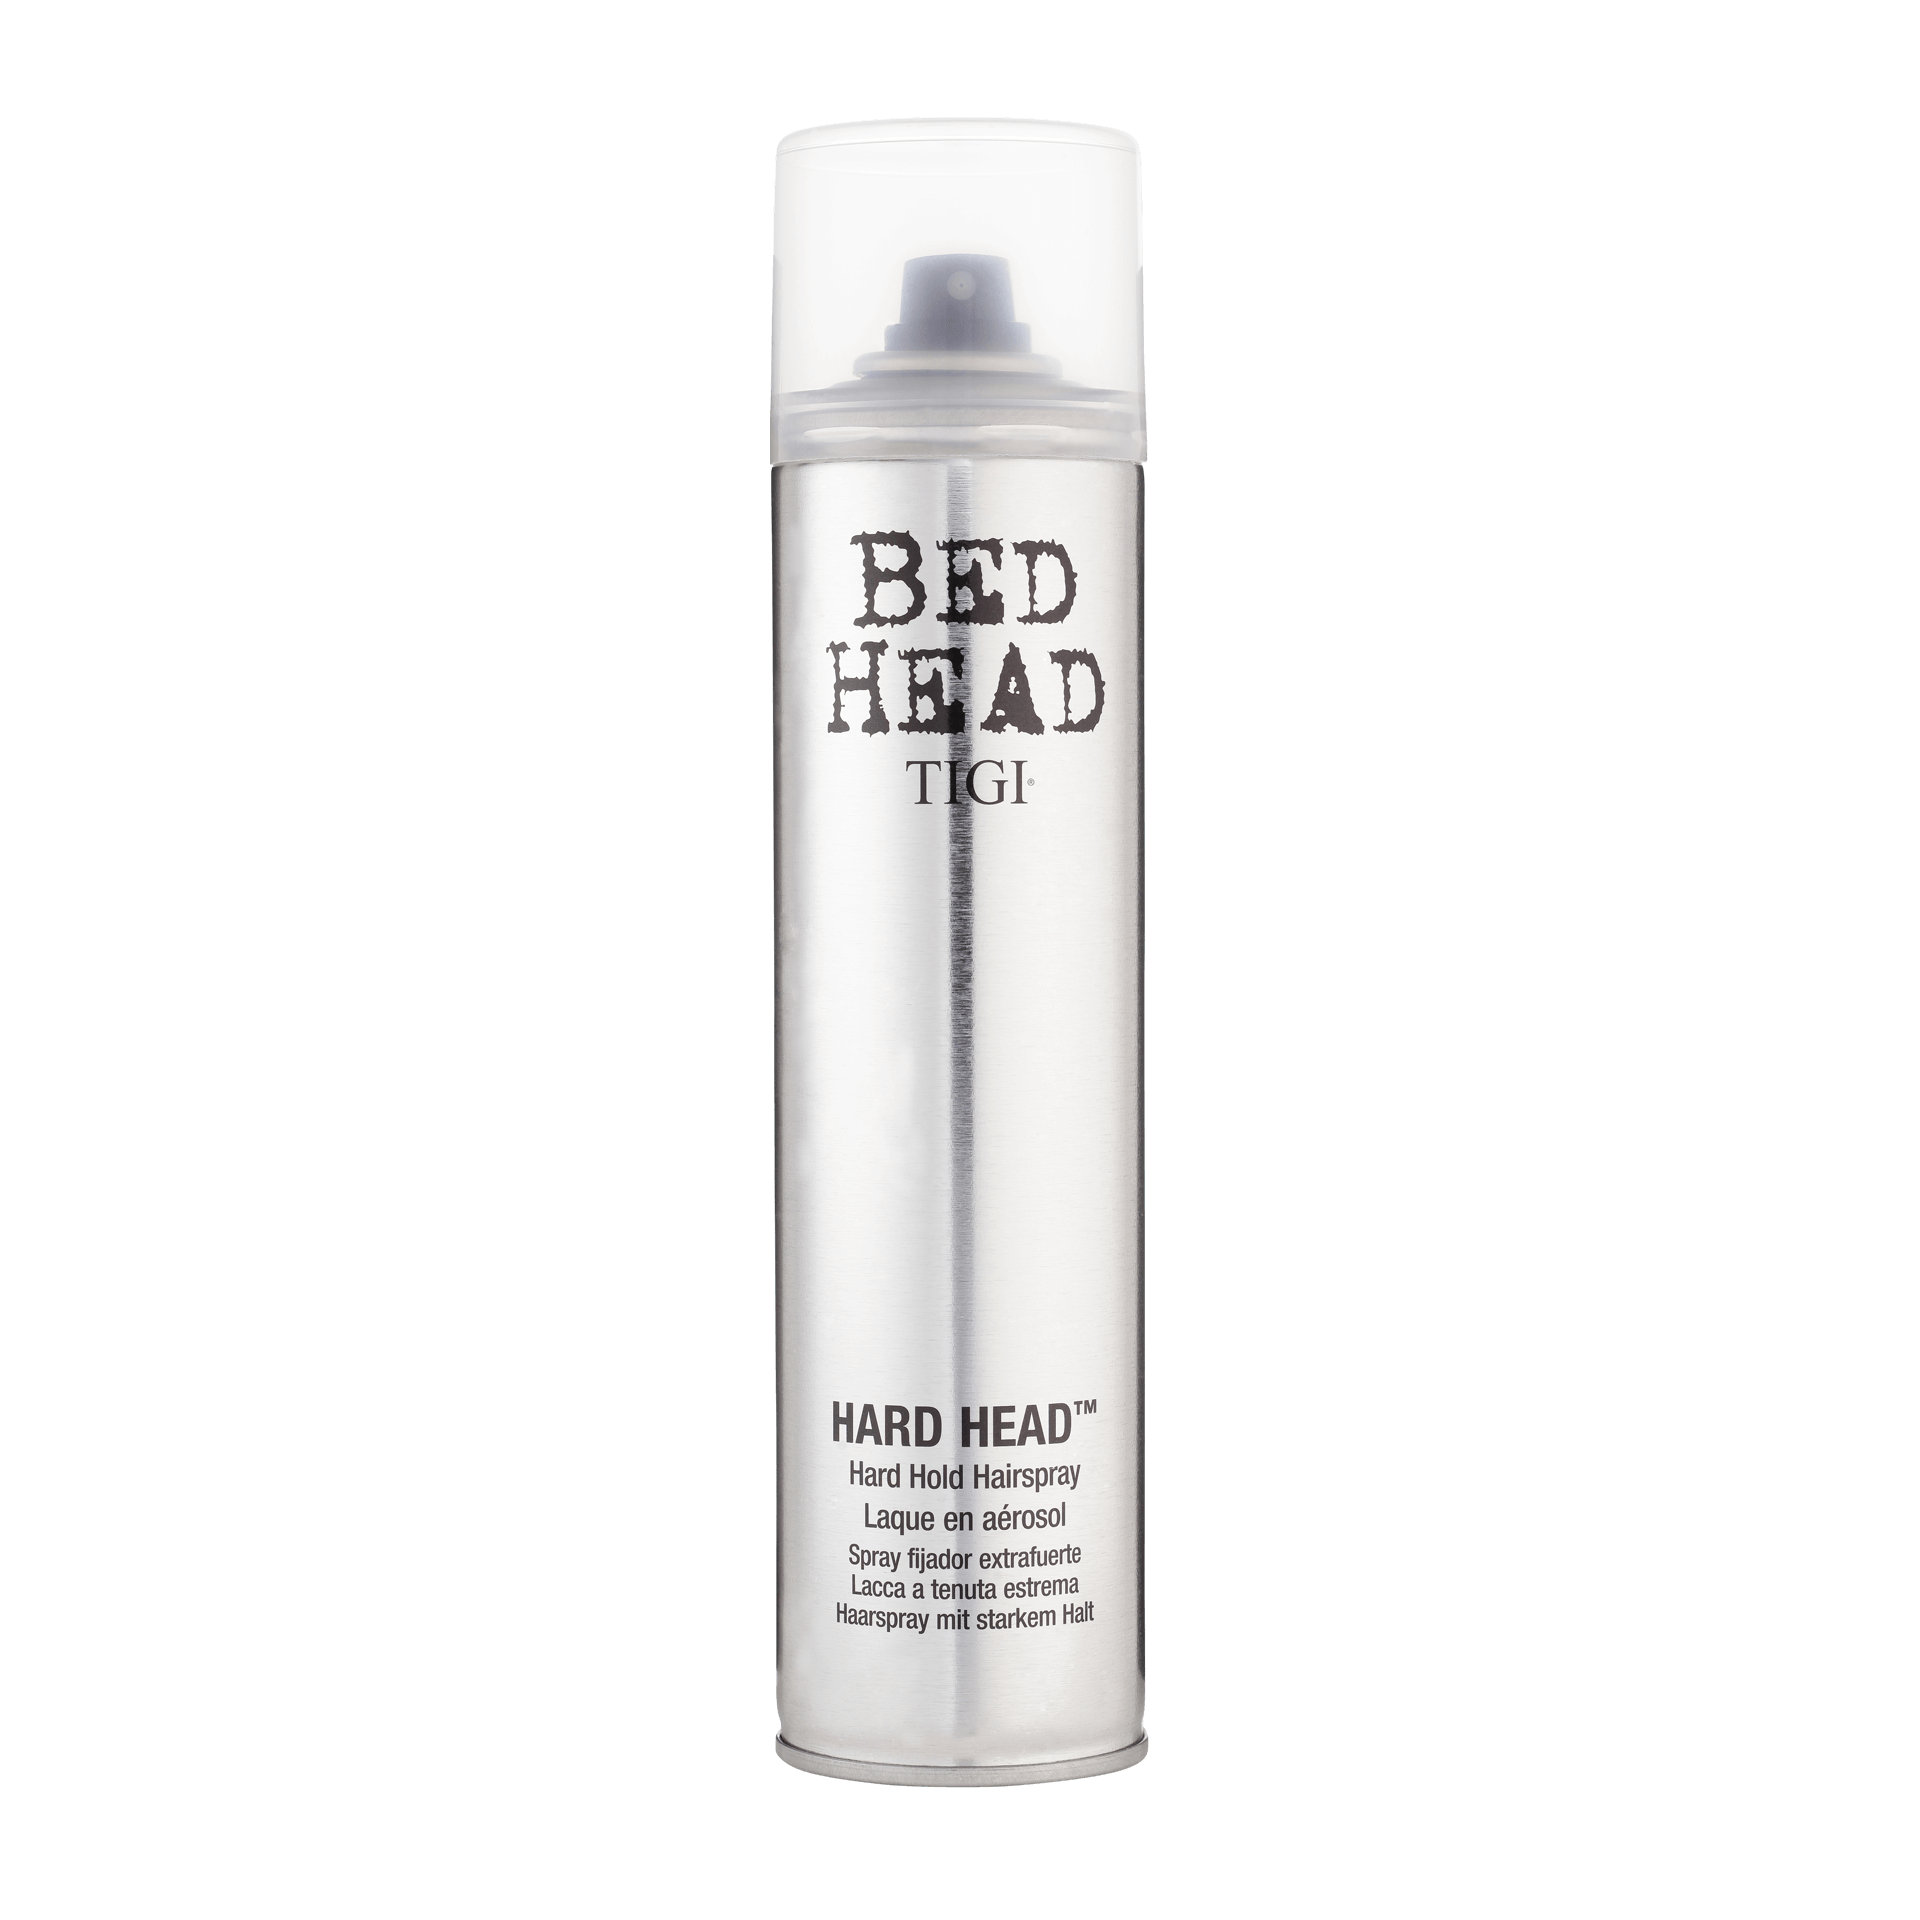 BED HEAD BY TIGI HARD HEAD HAIRSPRAY